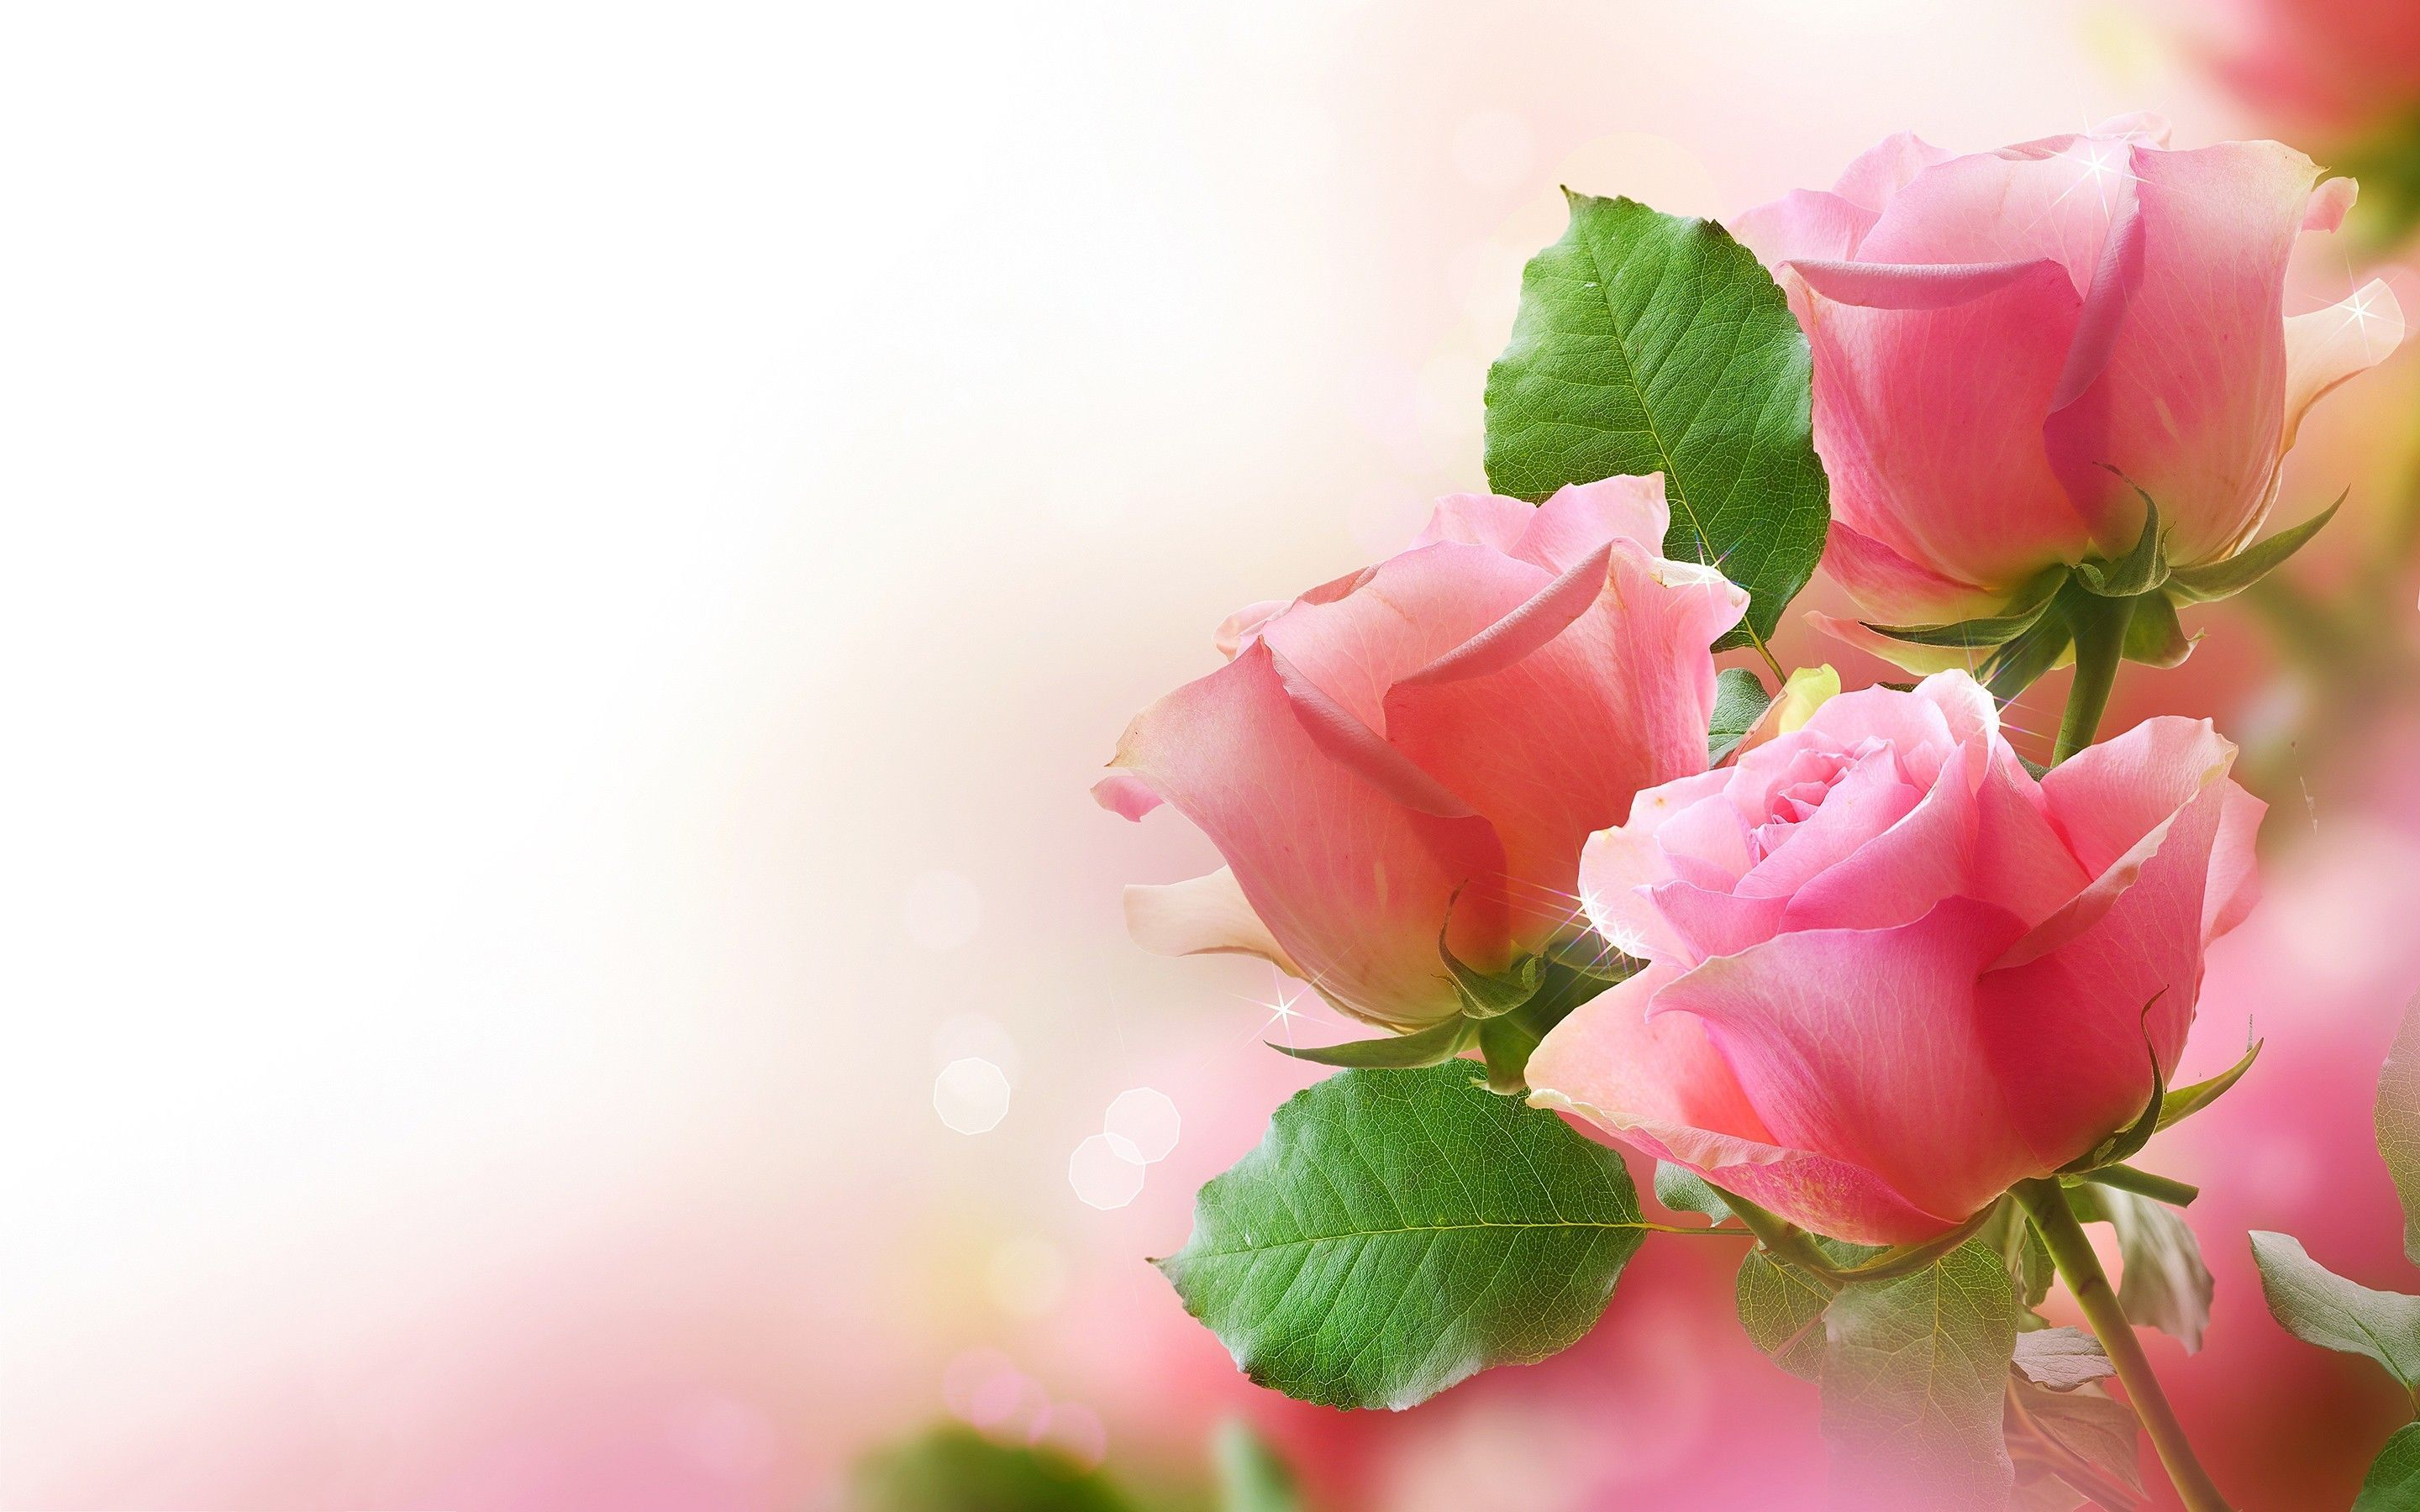 Rose Wallpapers For Desktop Full Size Hd Cool 7 HD